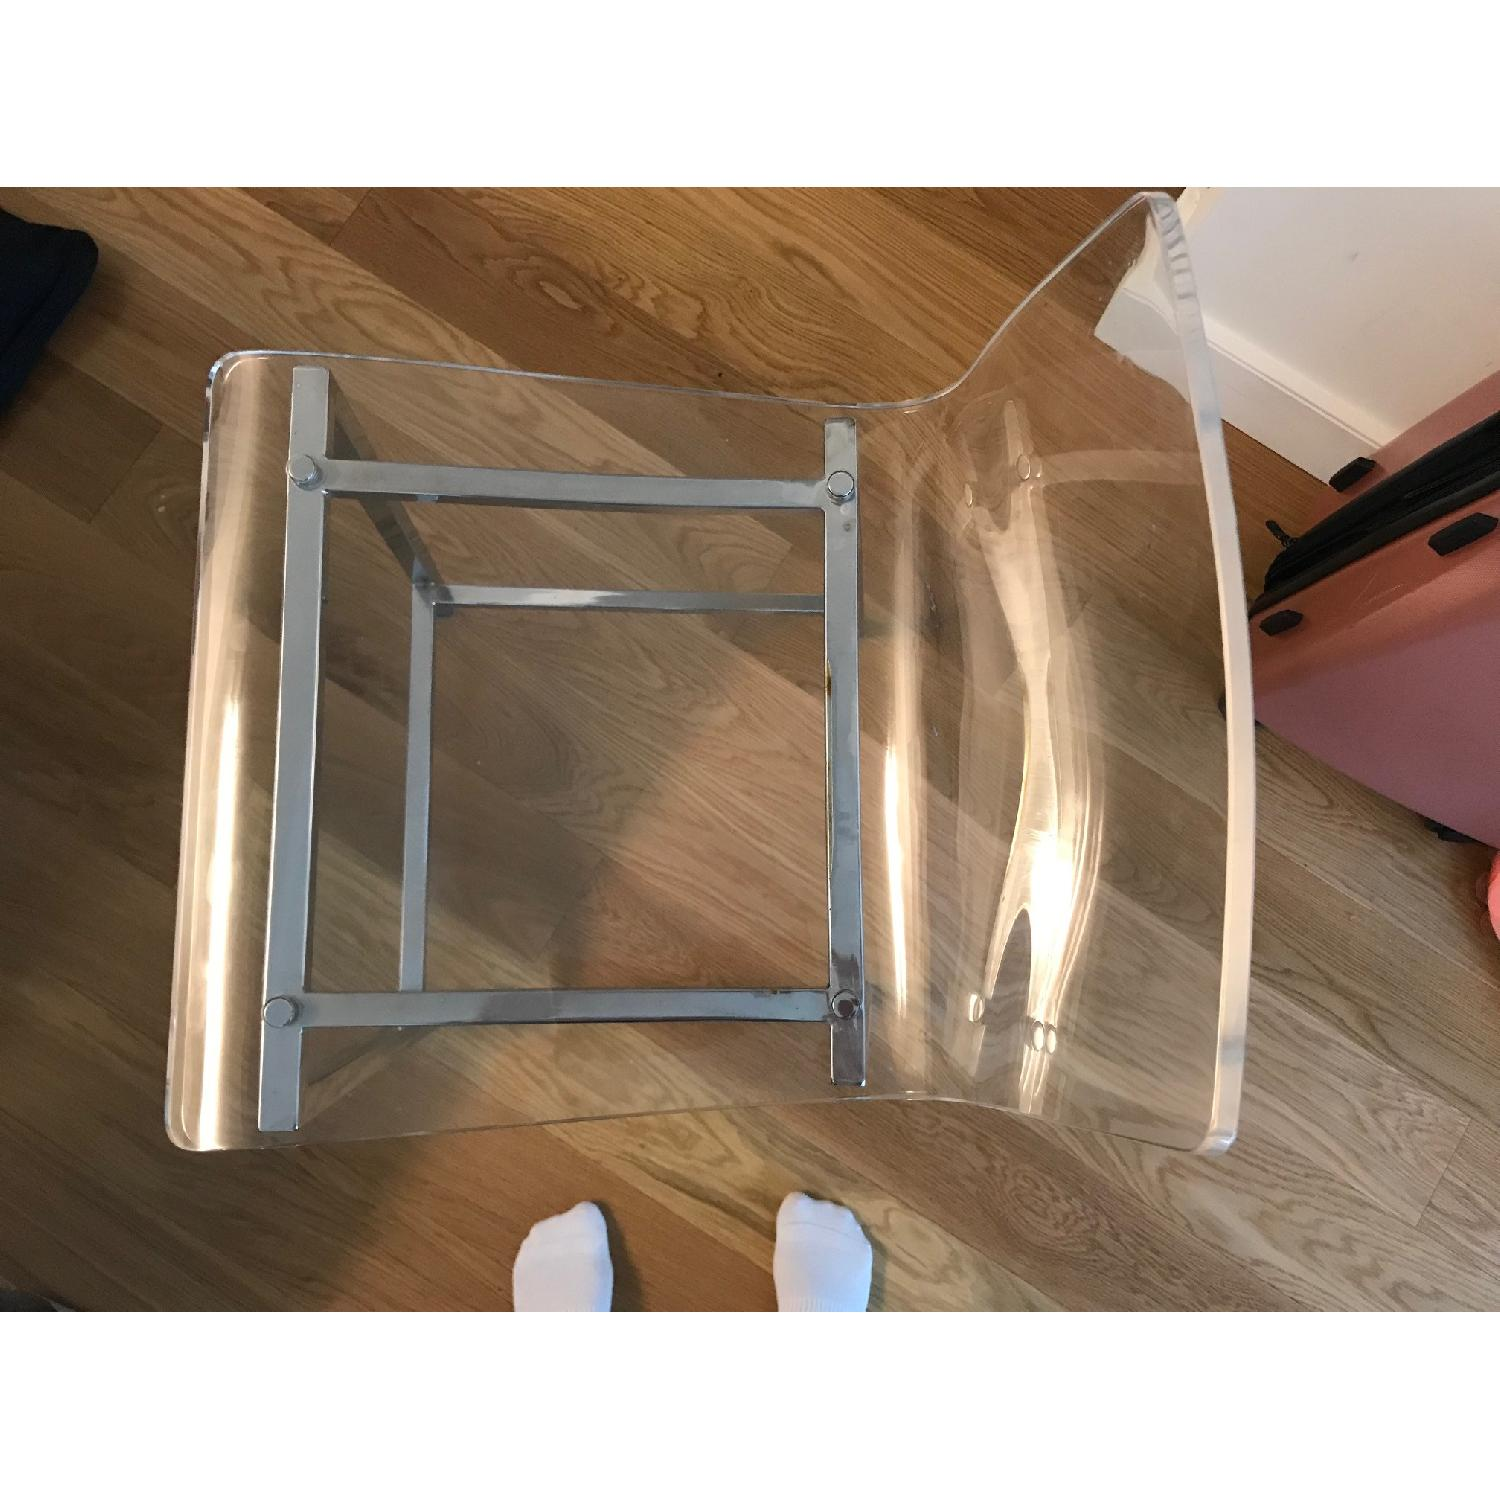 CB2 Clear Barstools in Nickel Finish - image-5